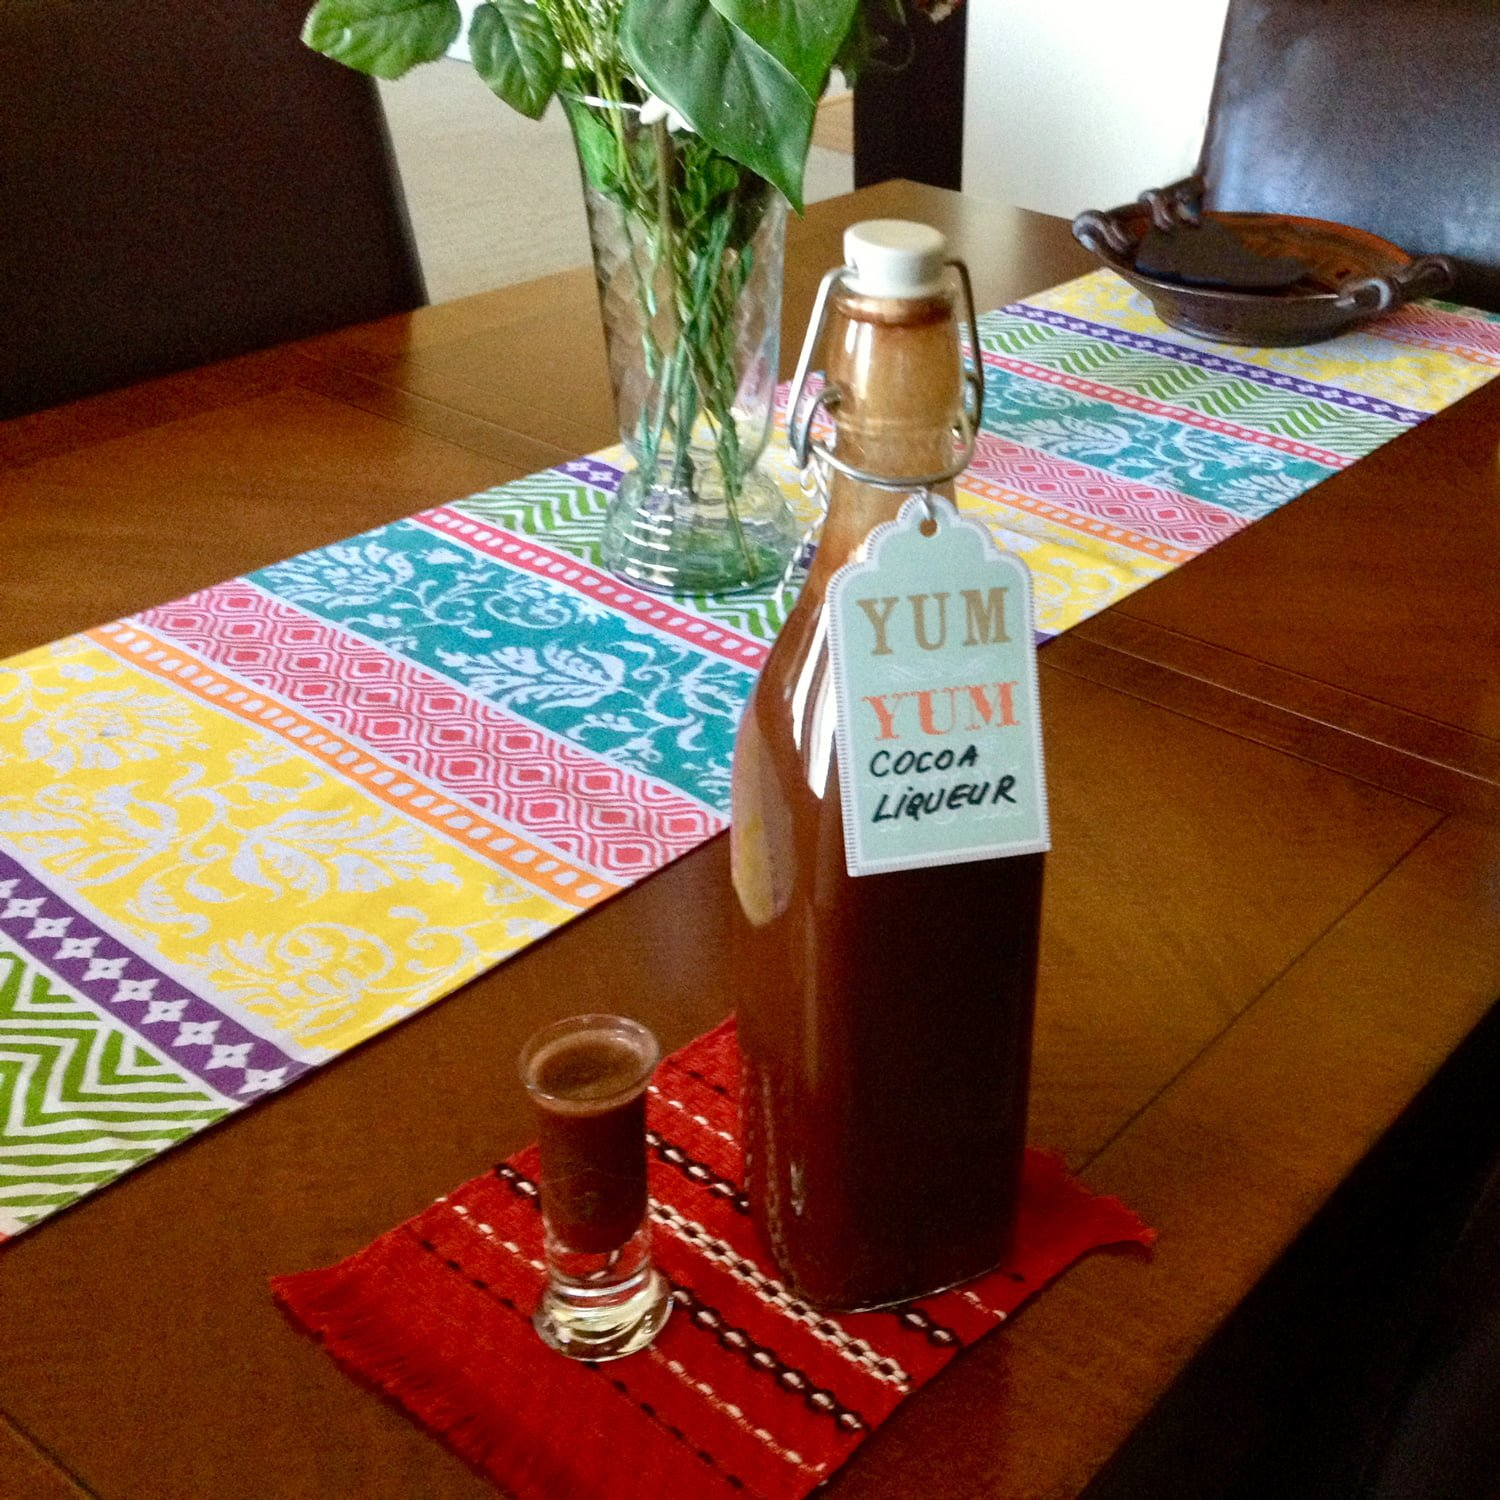 chocolate liqueurin a bottle on a dining table